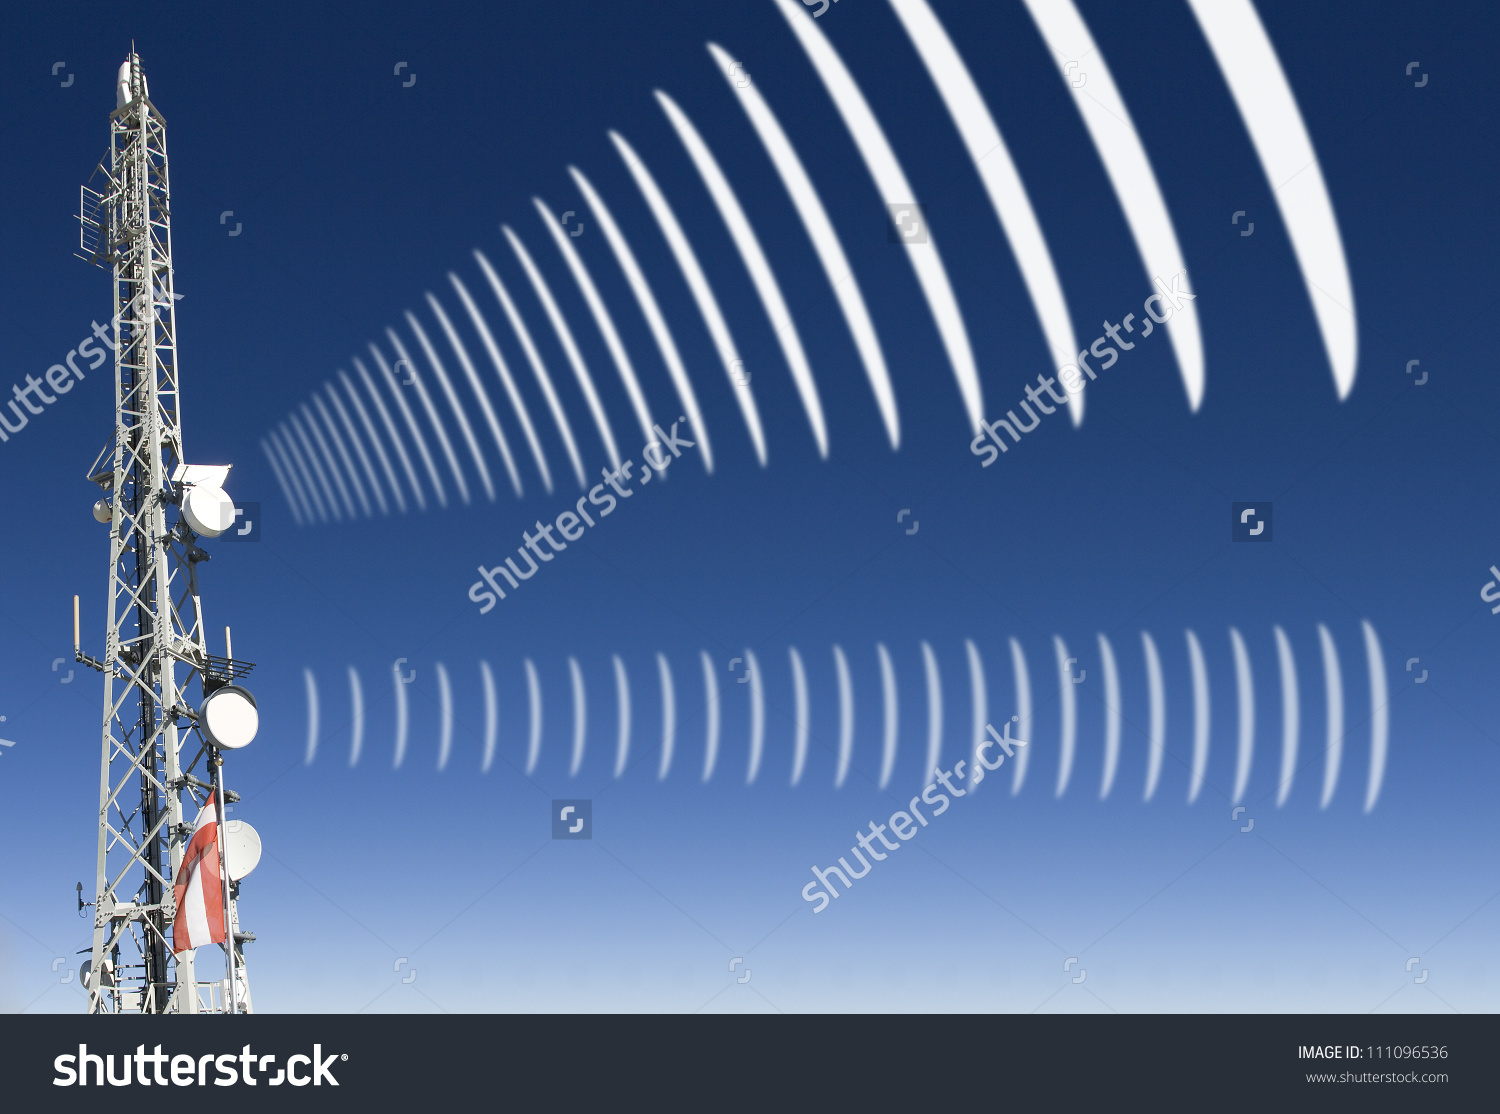 Mobile Radio Antenna With Symbolic Radiation Stock Photo 111096536.